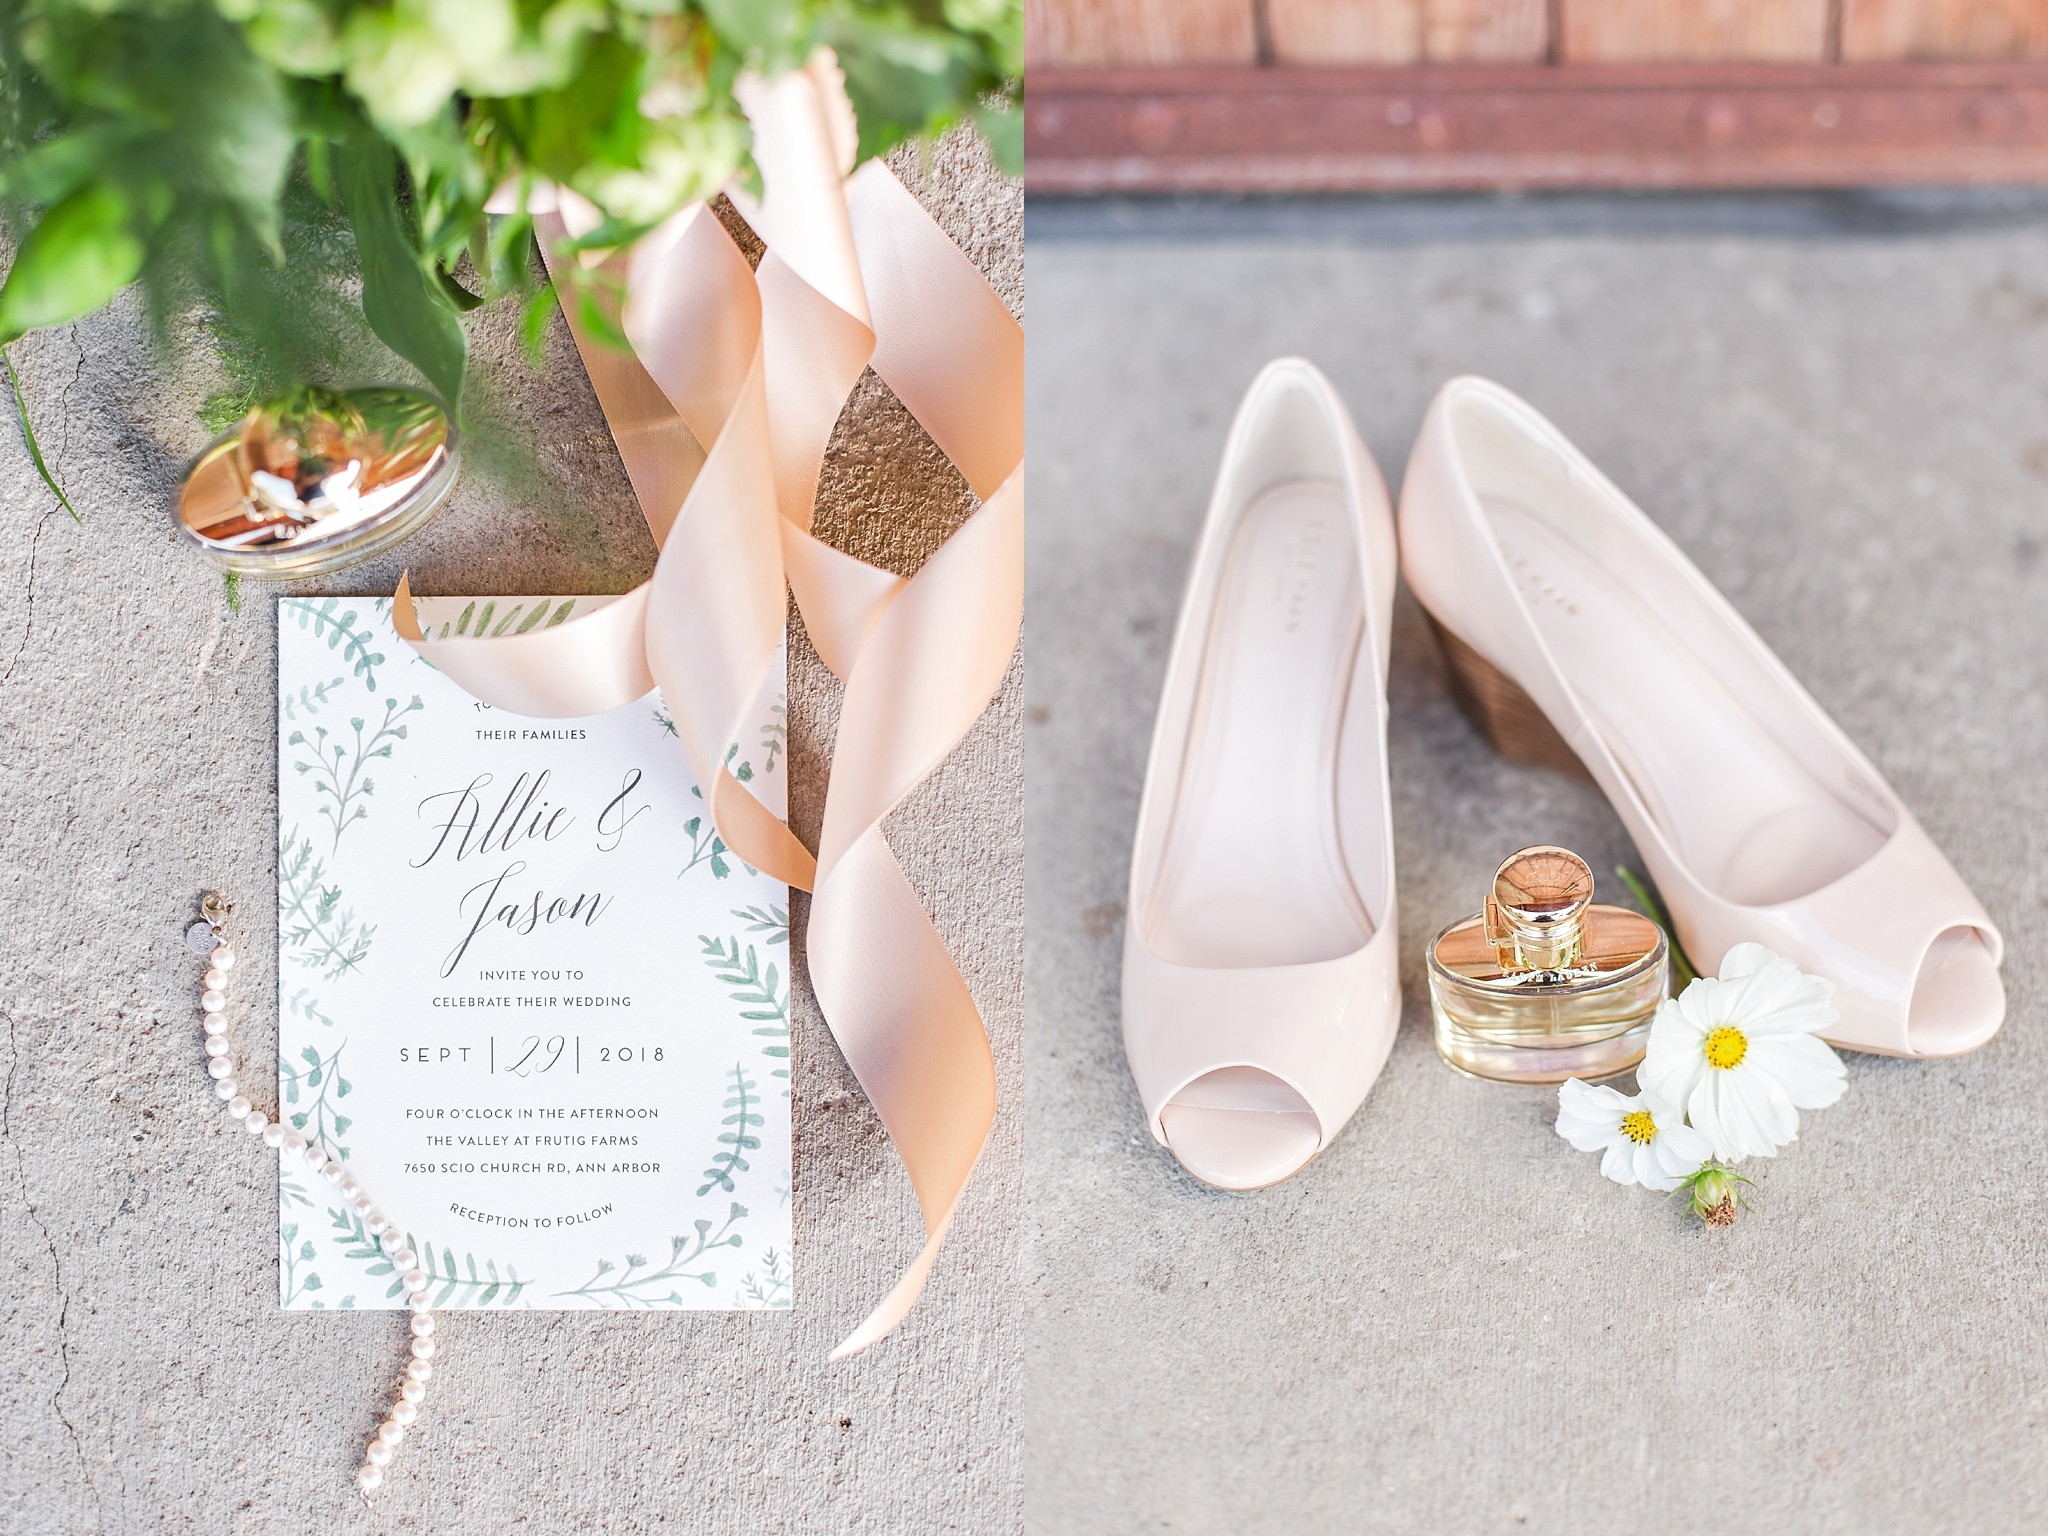 natural-rustic-wedding-photos-at-frutig-farms-the-valley-in-ann-arbor-michigan-by-courtney-carolyn-photography_0007.jpg